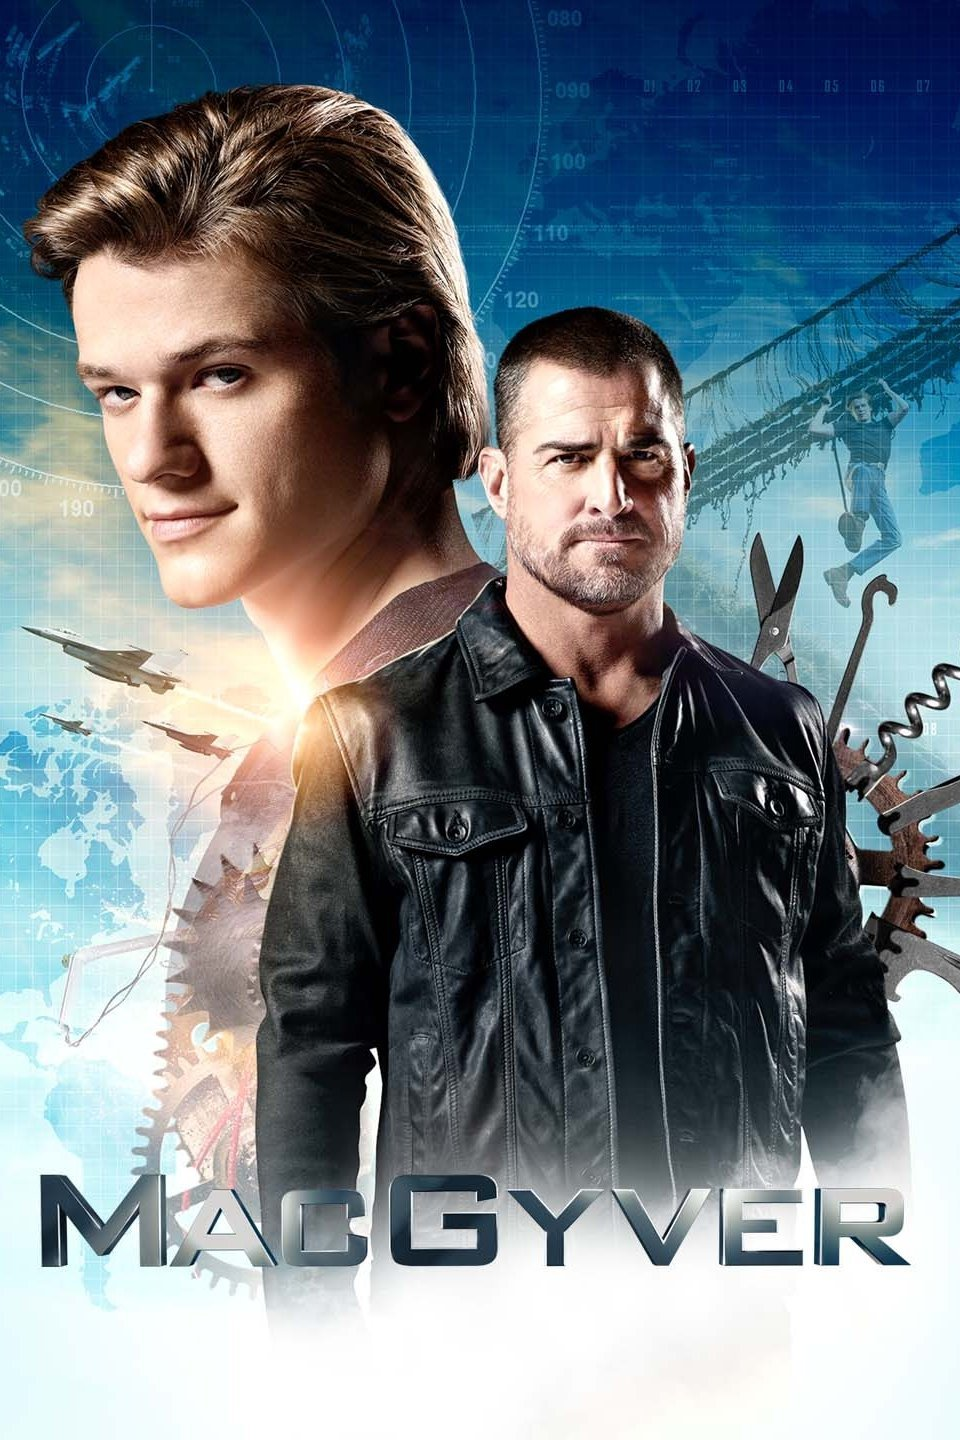 Macgyver Season 2 Episode 23 Download WEBRip 480p 720p